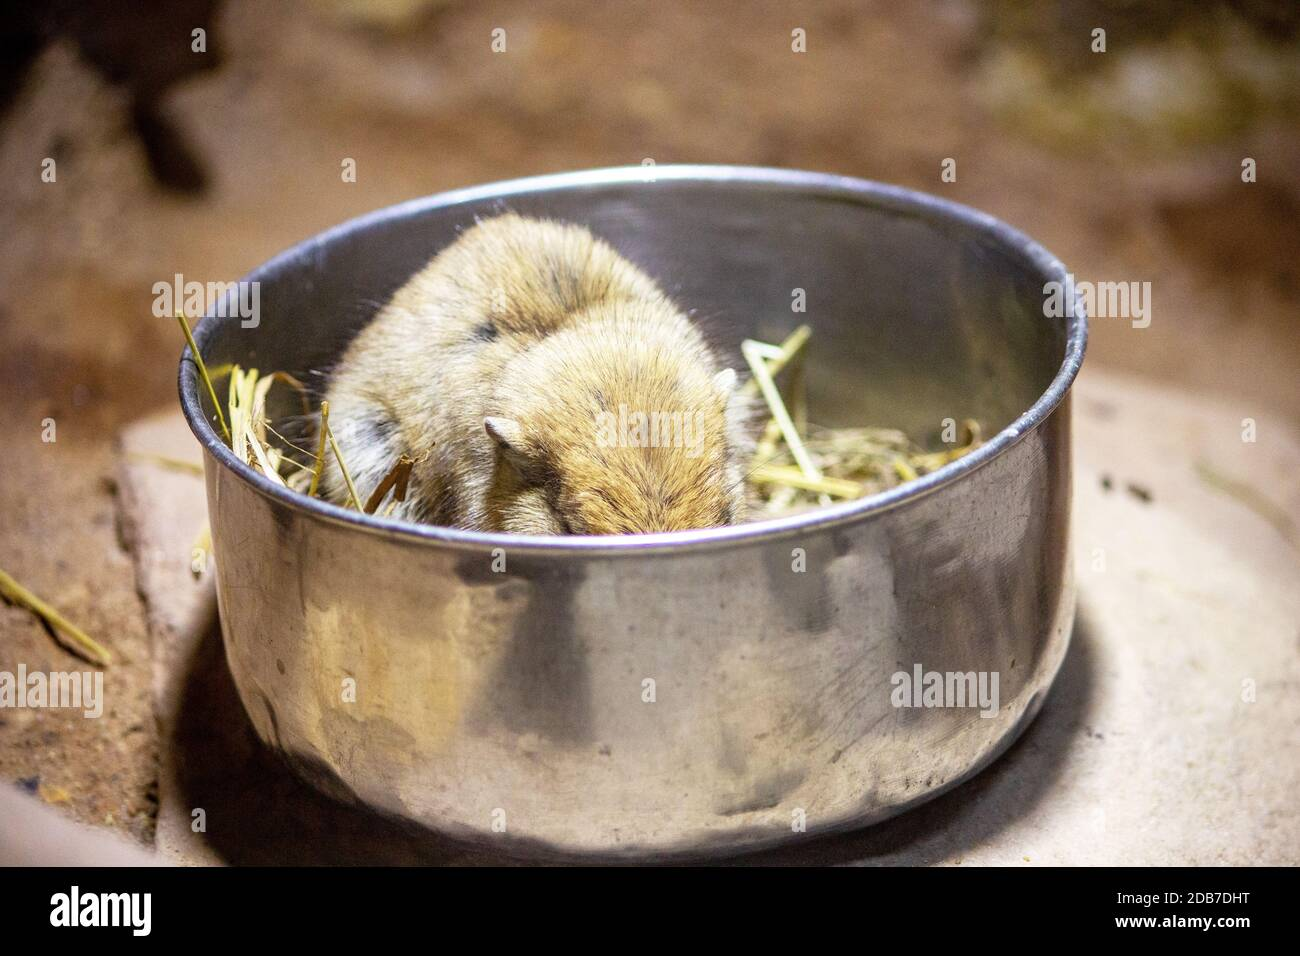 Picture of a fat sand rat while eating in its free bowl, Psammomys obesus Stock Photo